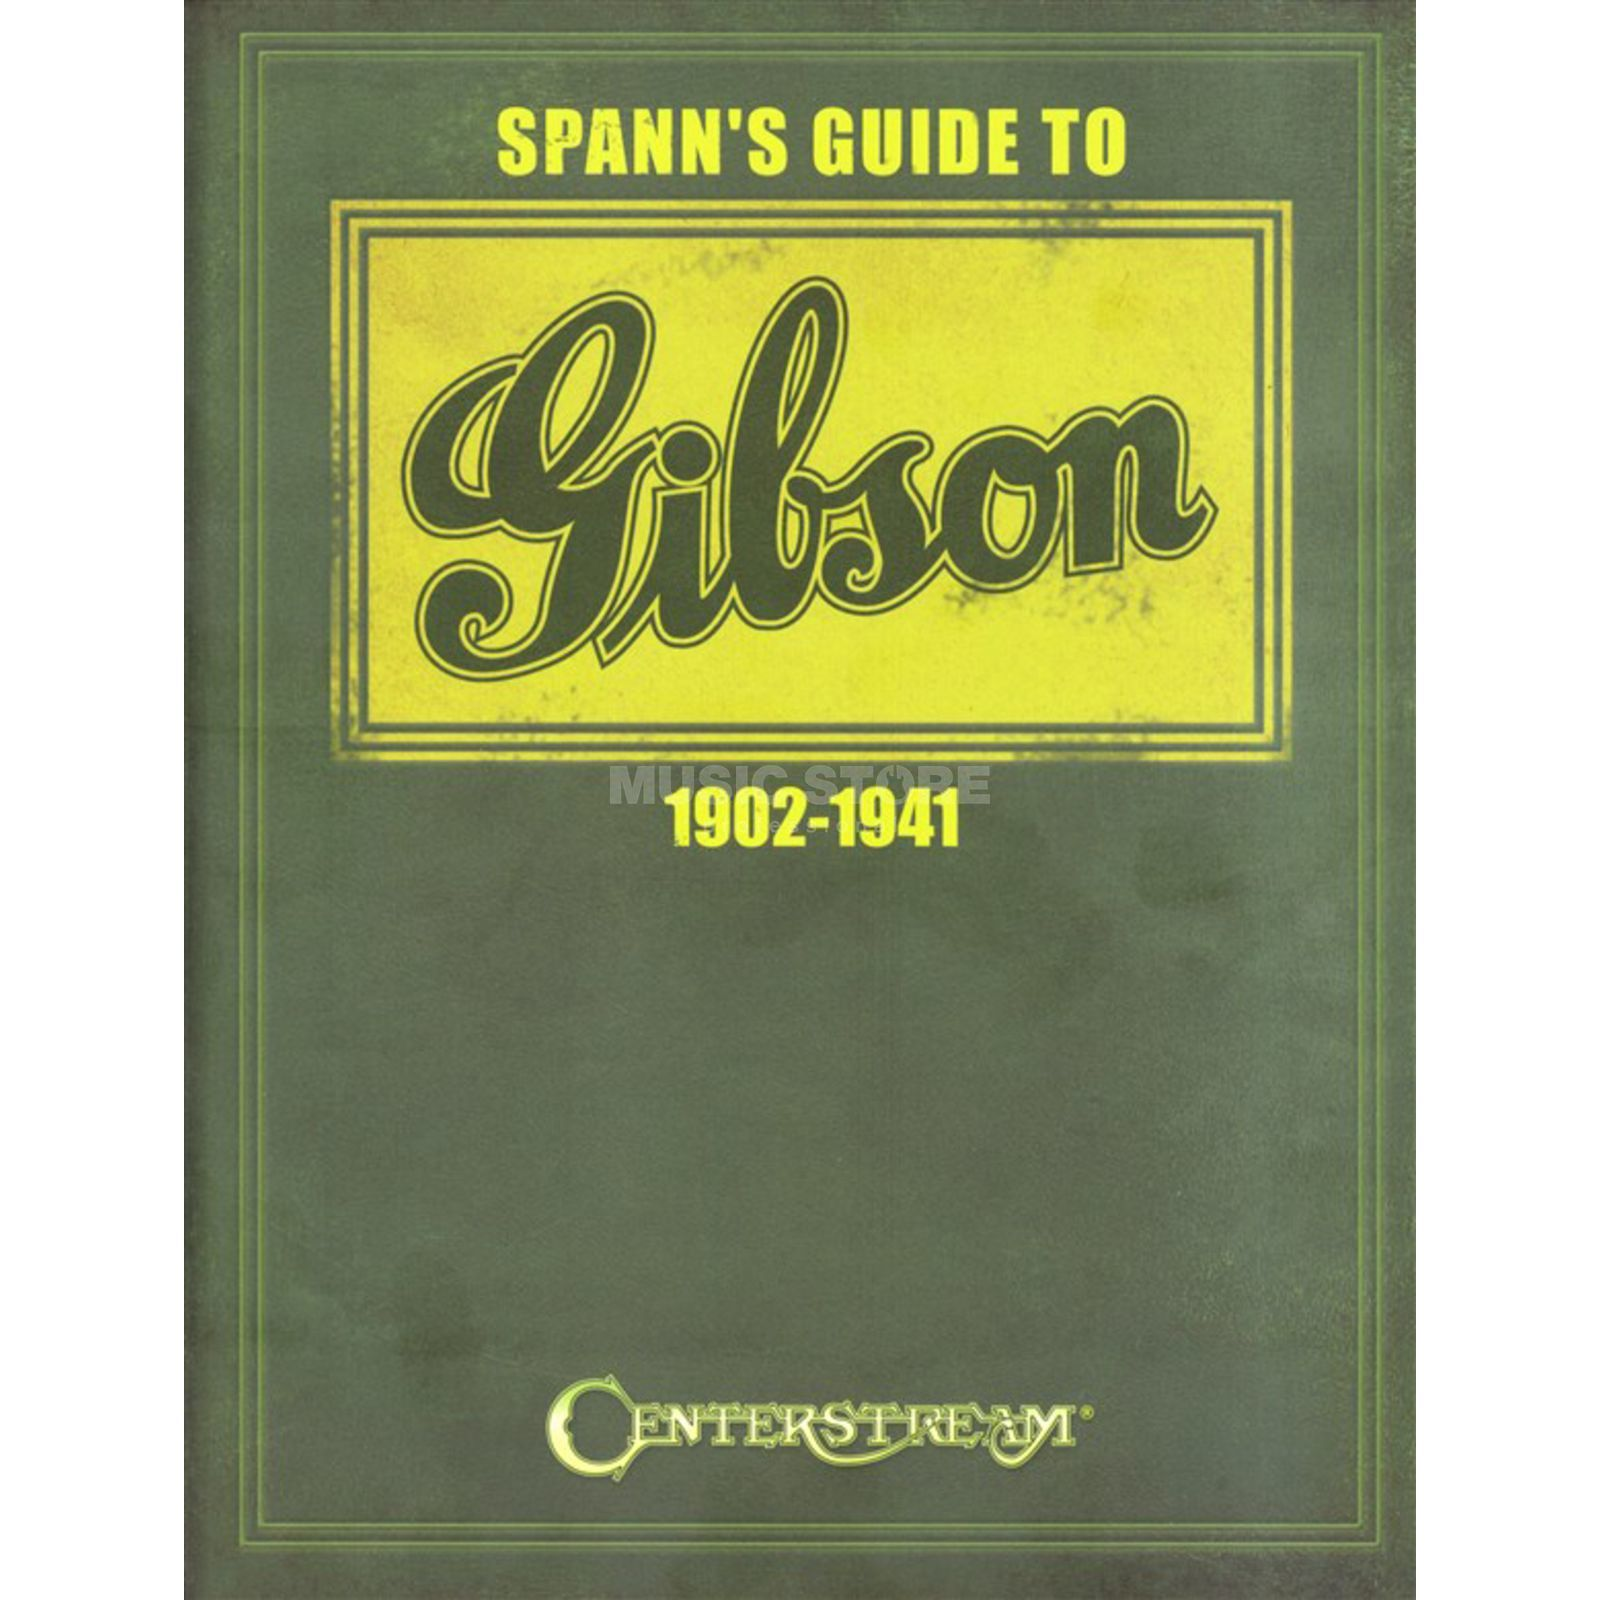 Centerstream Publications Spann's Guide To Gibson 1902-1941 Produktbillede